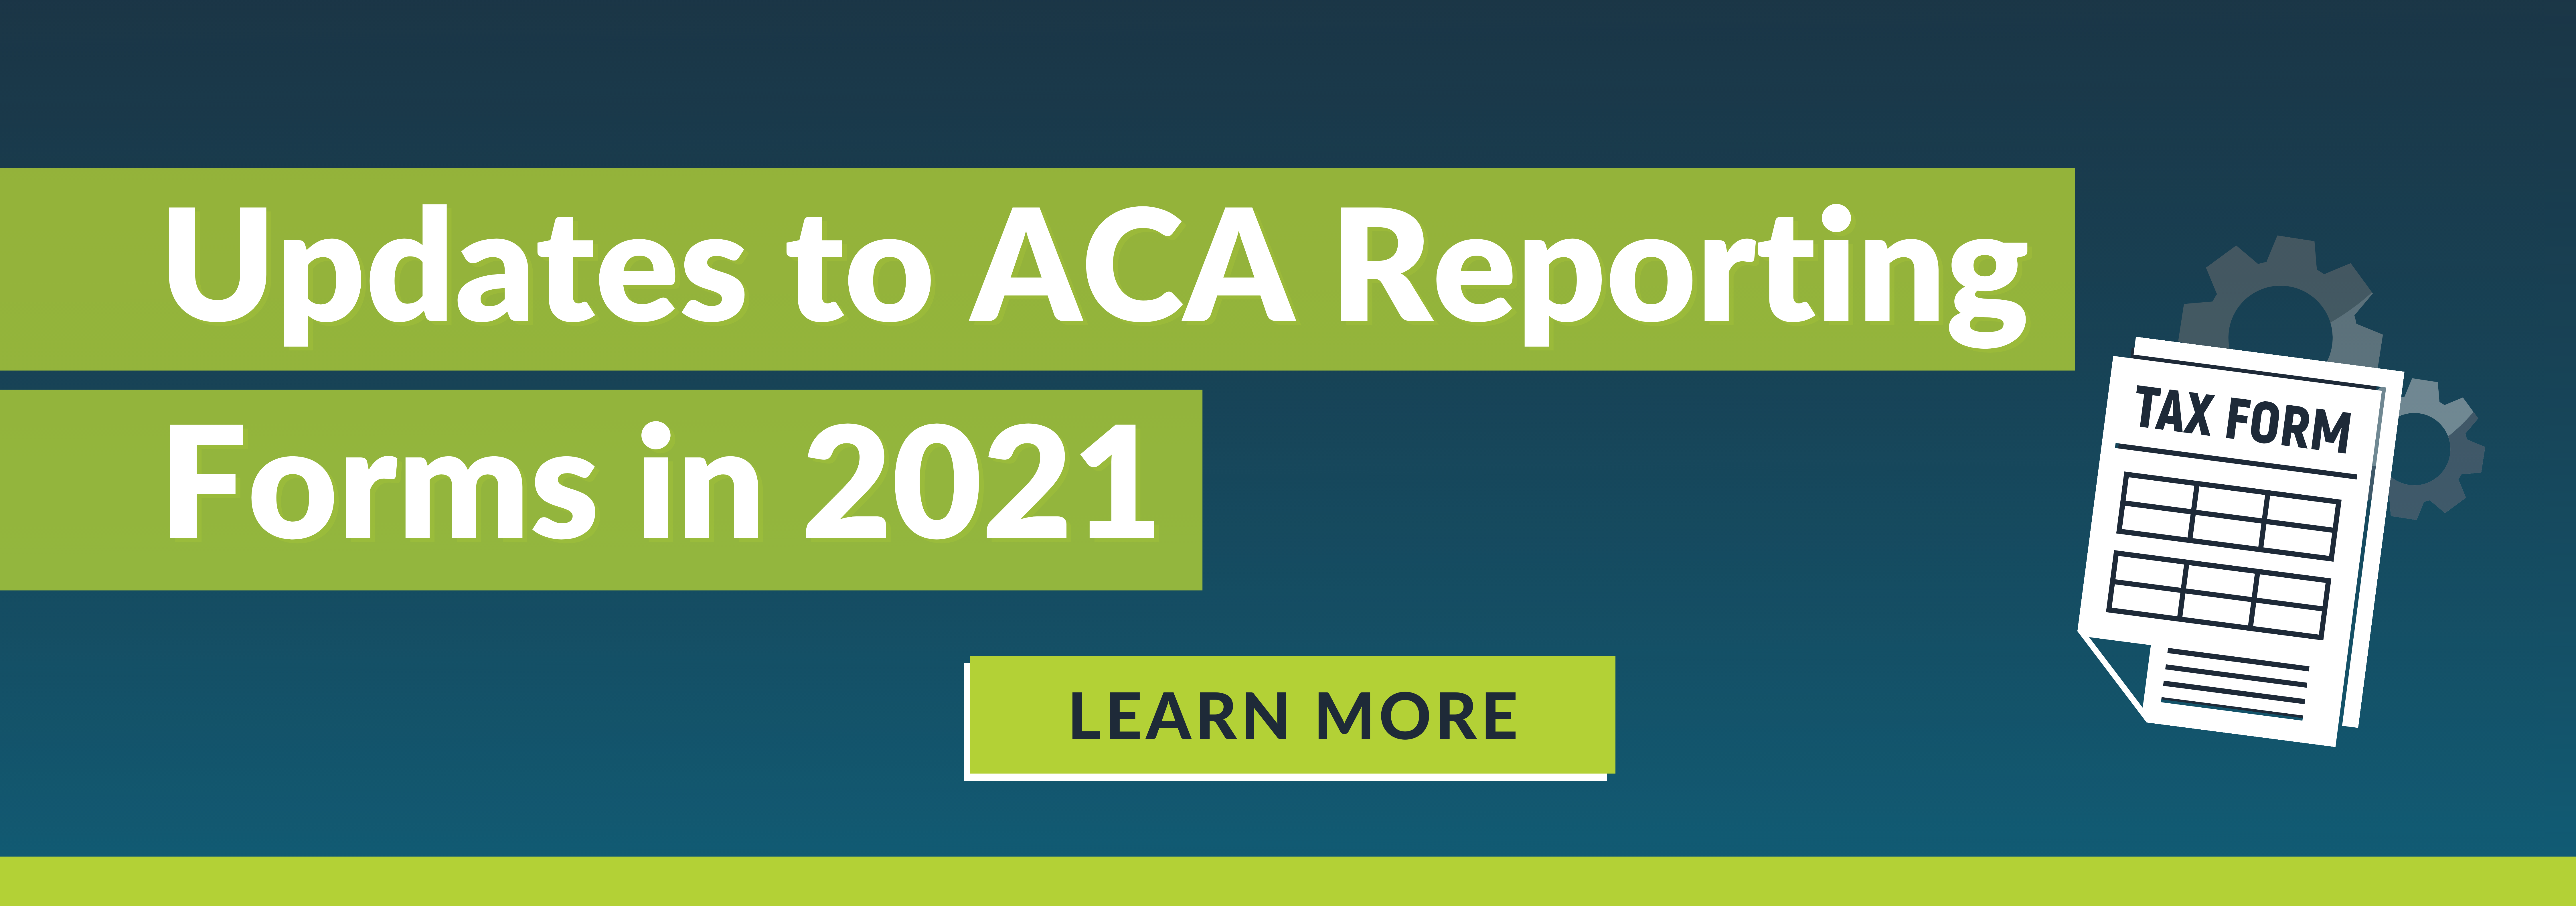 New ACA Reporting Forms for 2021